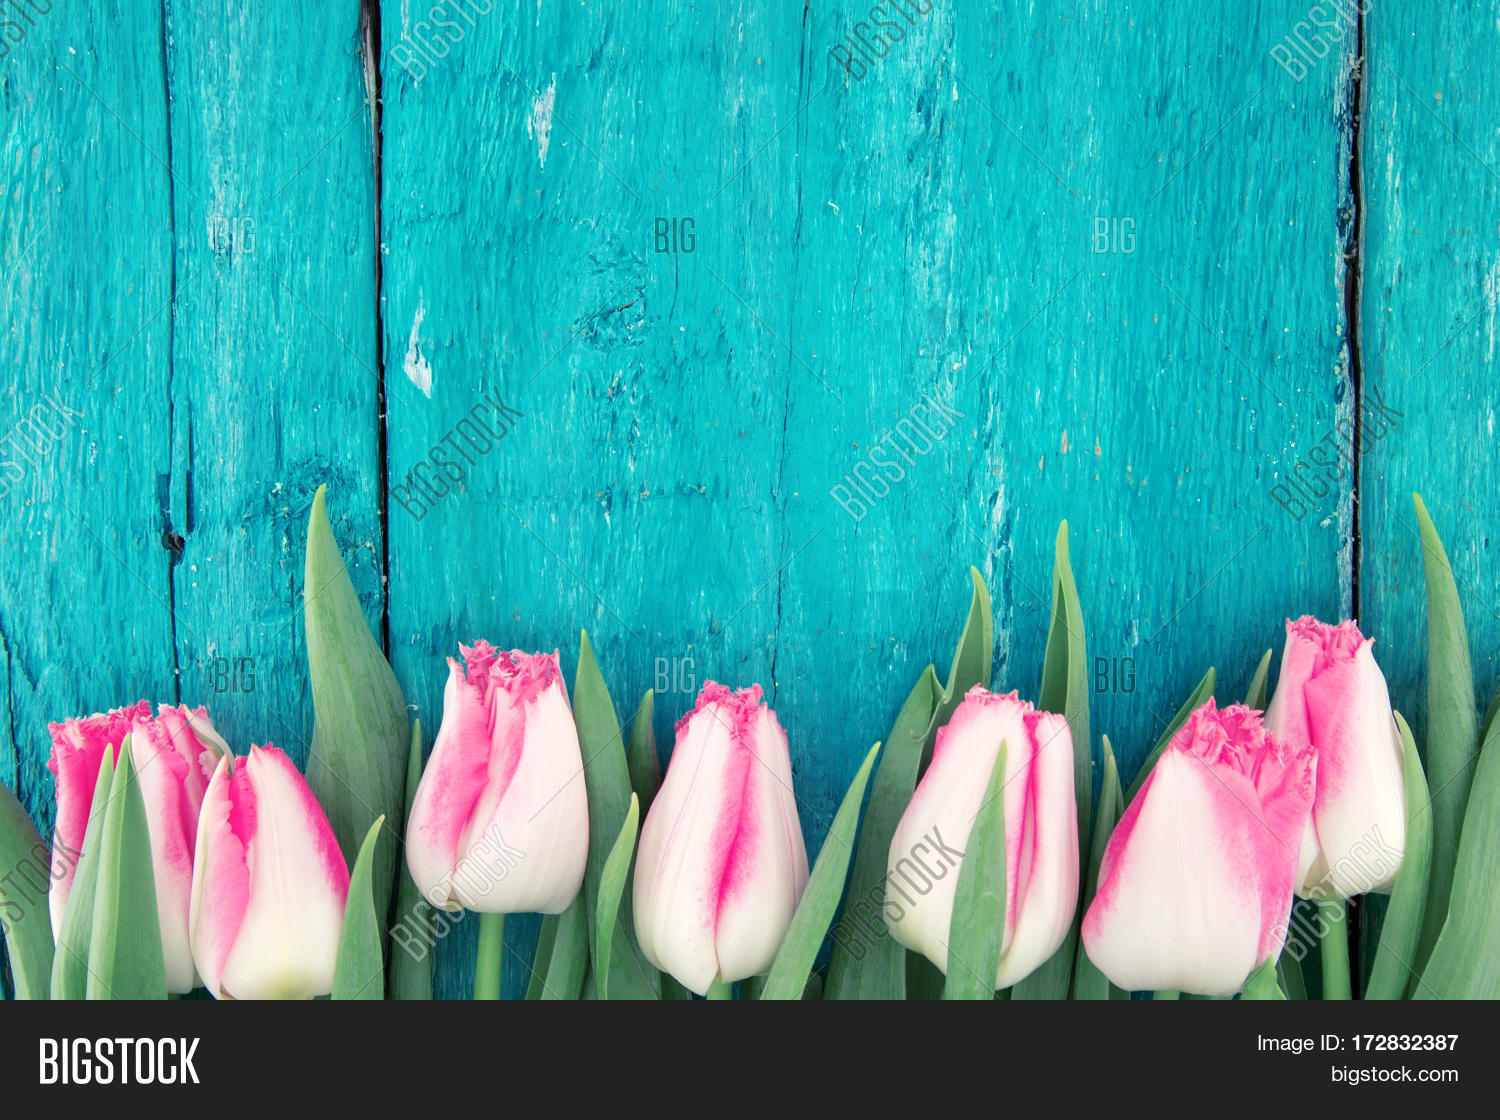 Frame Of Tulips On Turquoise Rustic Wooden Background Spring Flowers Greeting